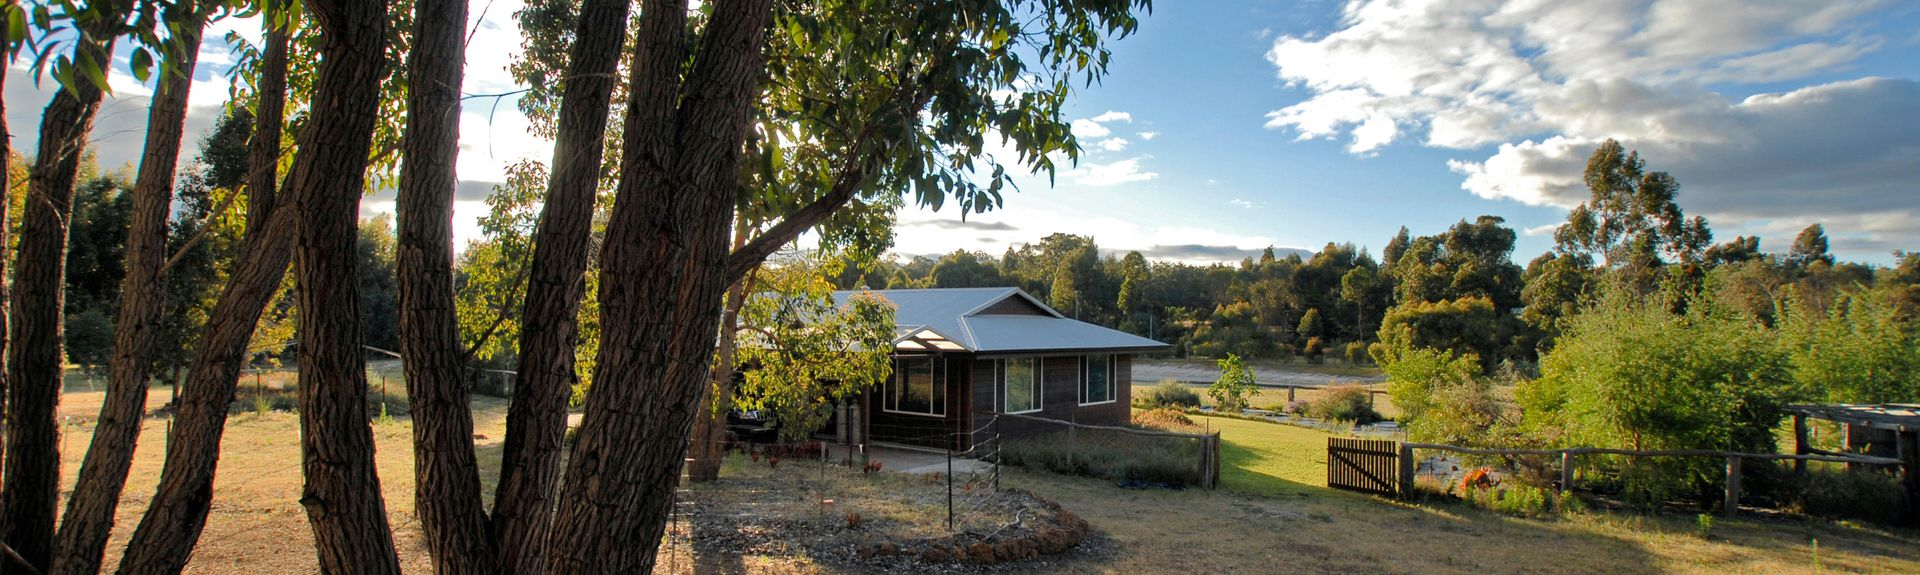 Nannup, Australia Occidentale, Australia